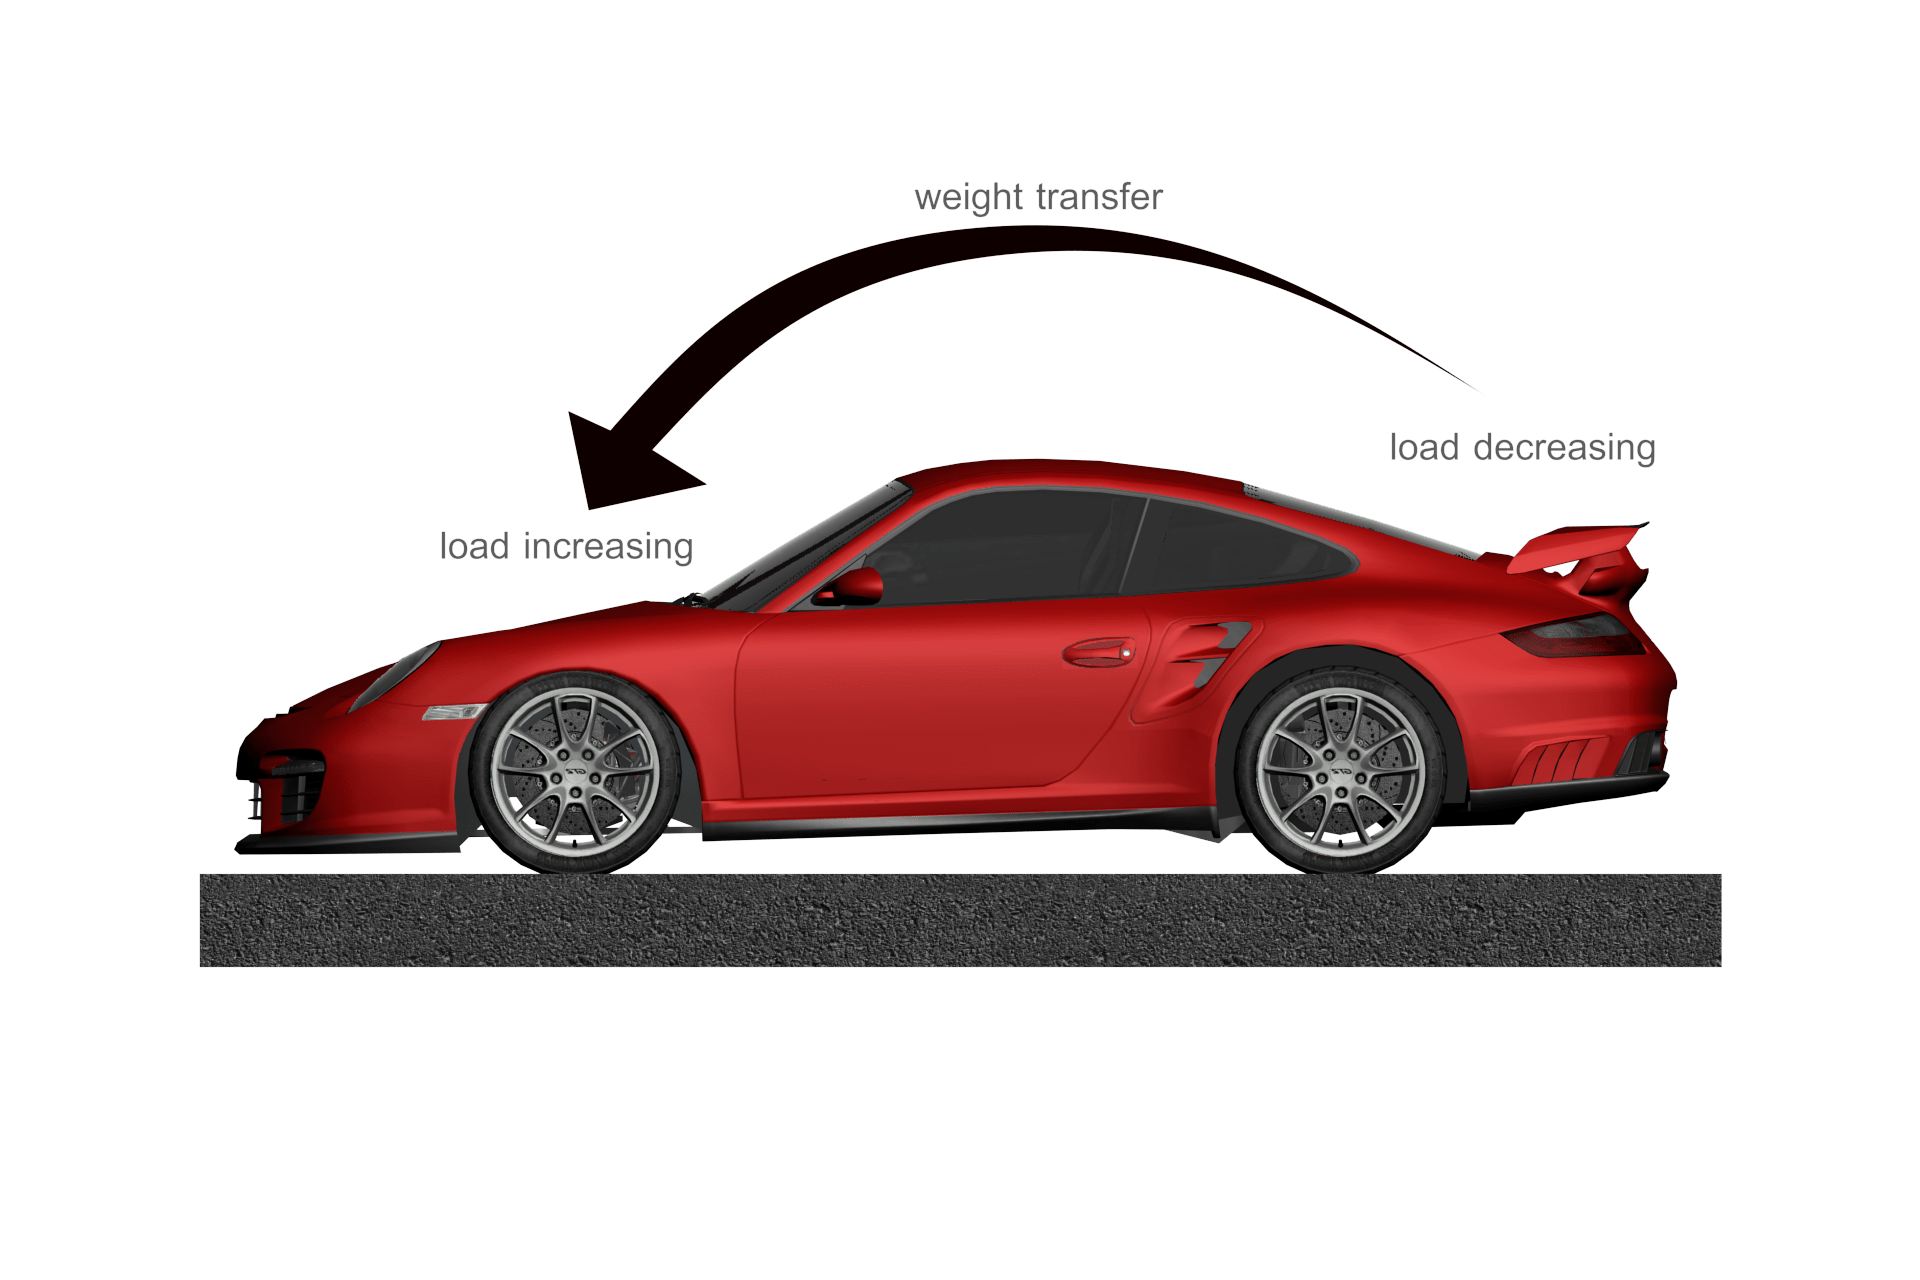 how weight transfer works in the car